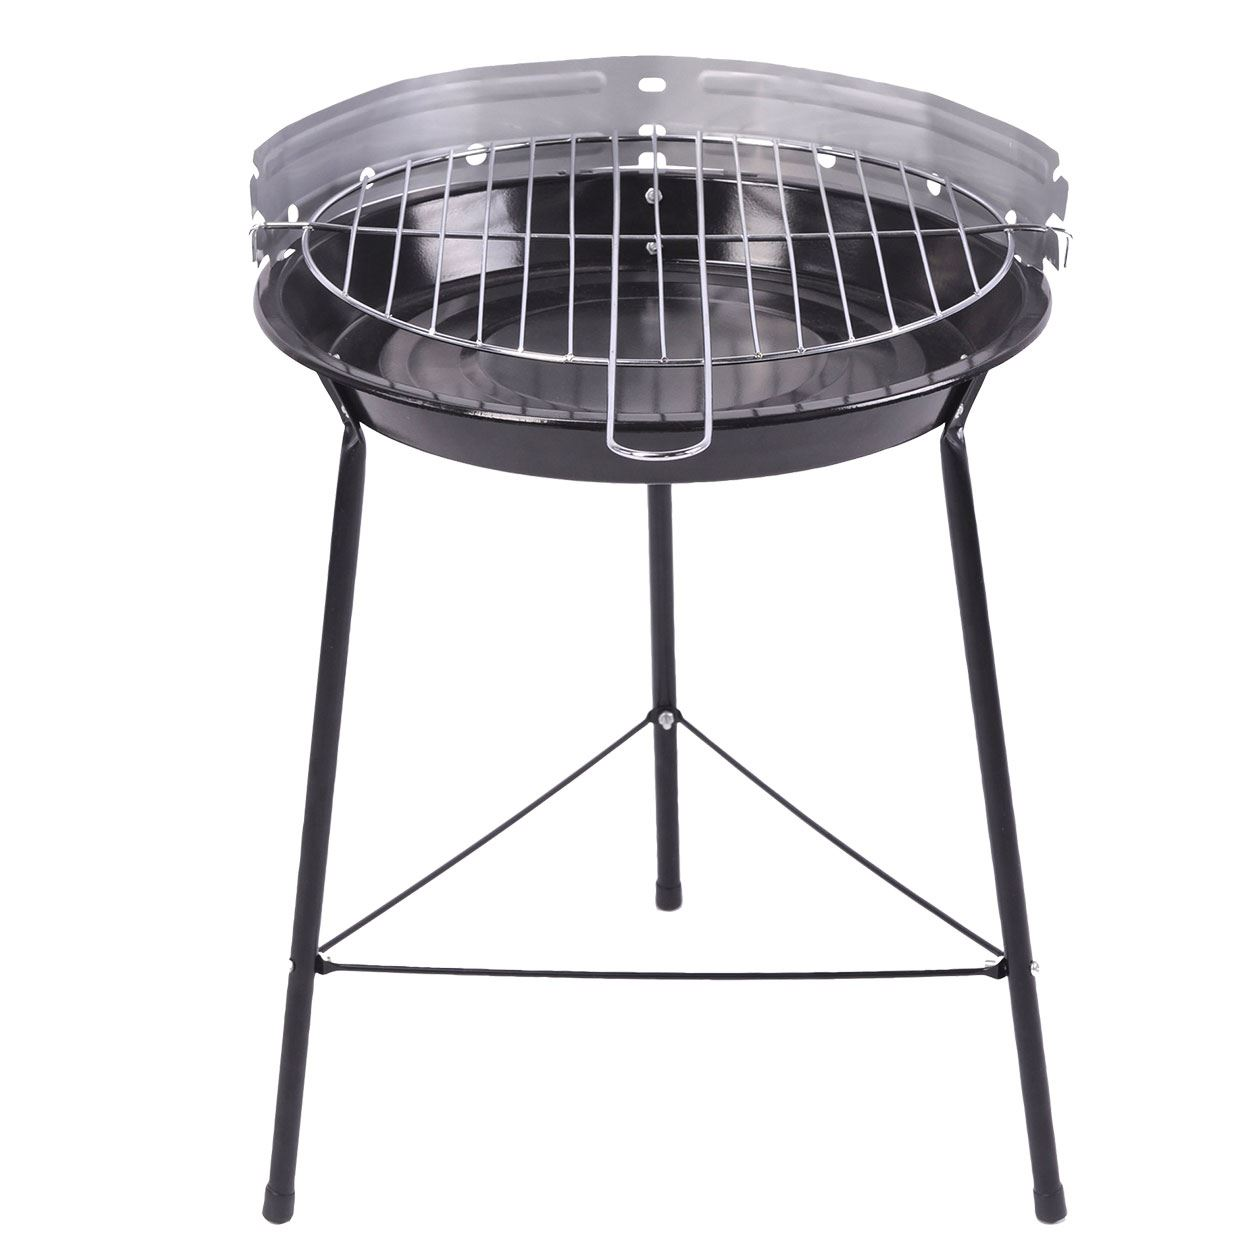 portable 14 barbecue grill bbq charcoal picnic camping outdoor party beach ebay. Black Bedroom Furniture Sets. Home Design Ideas